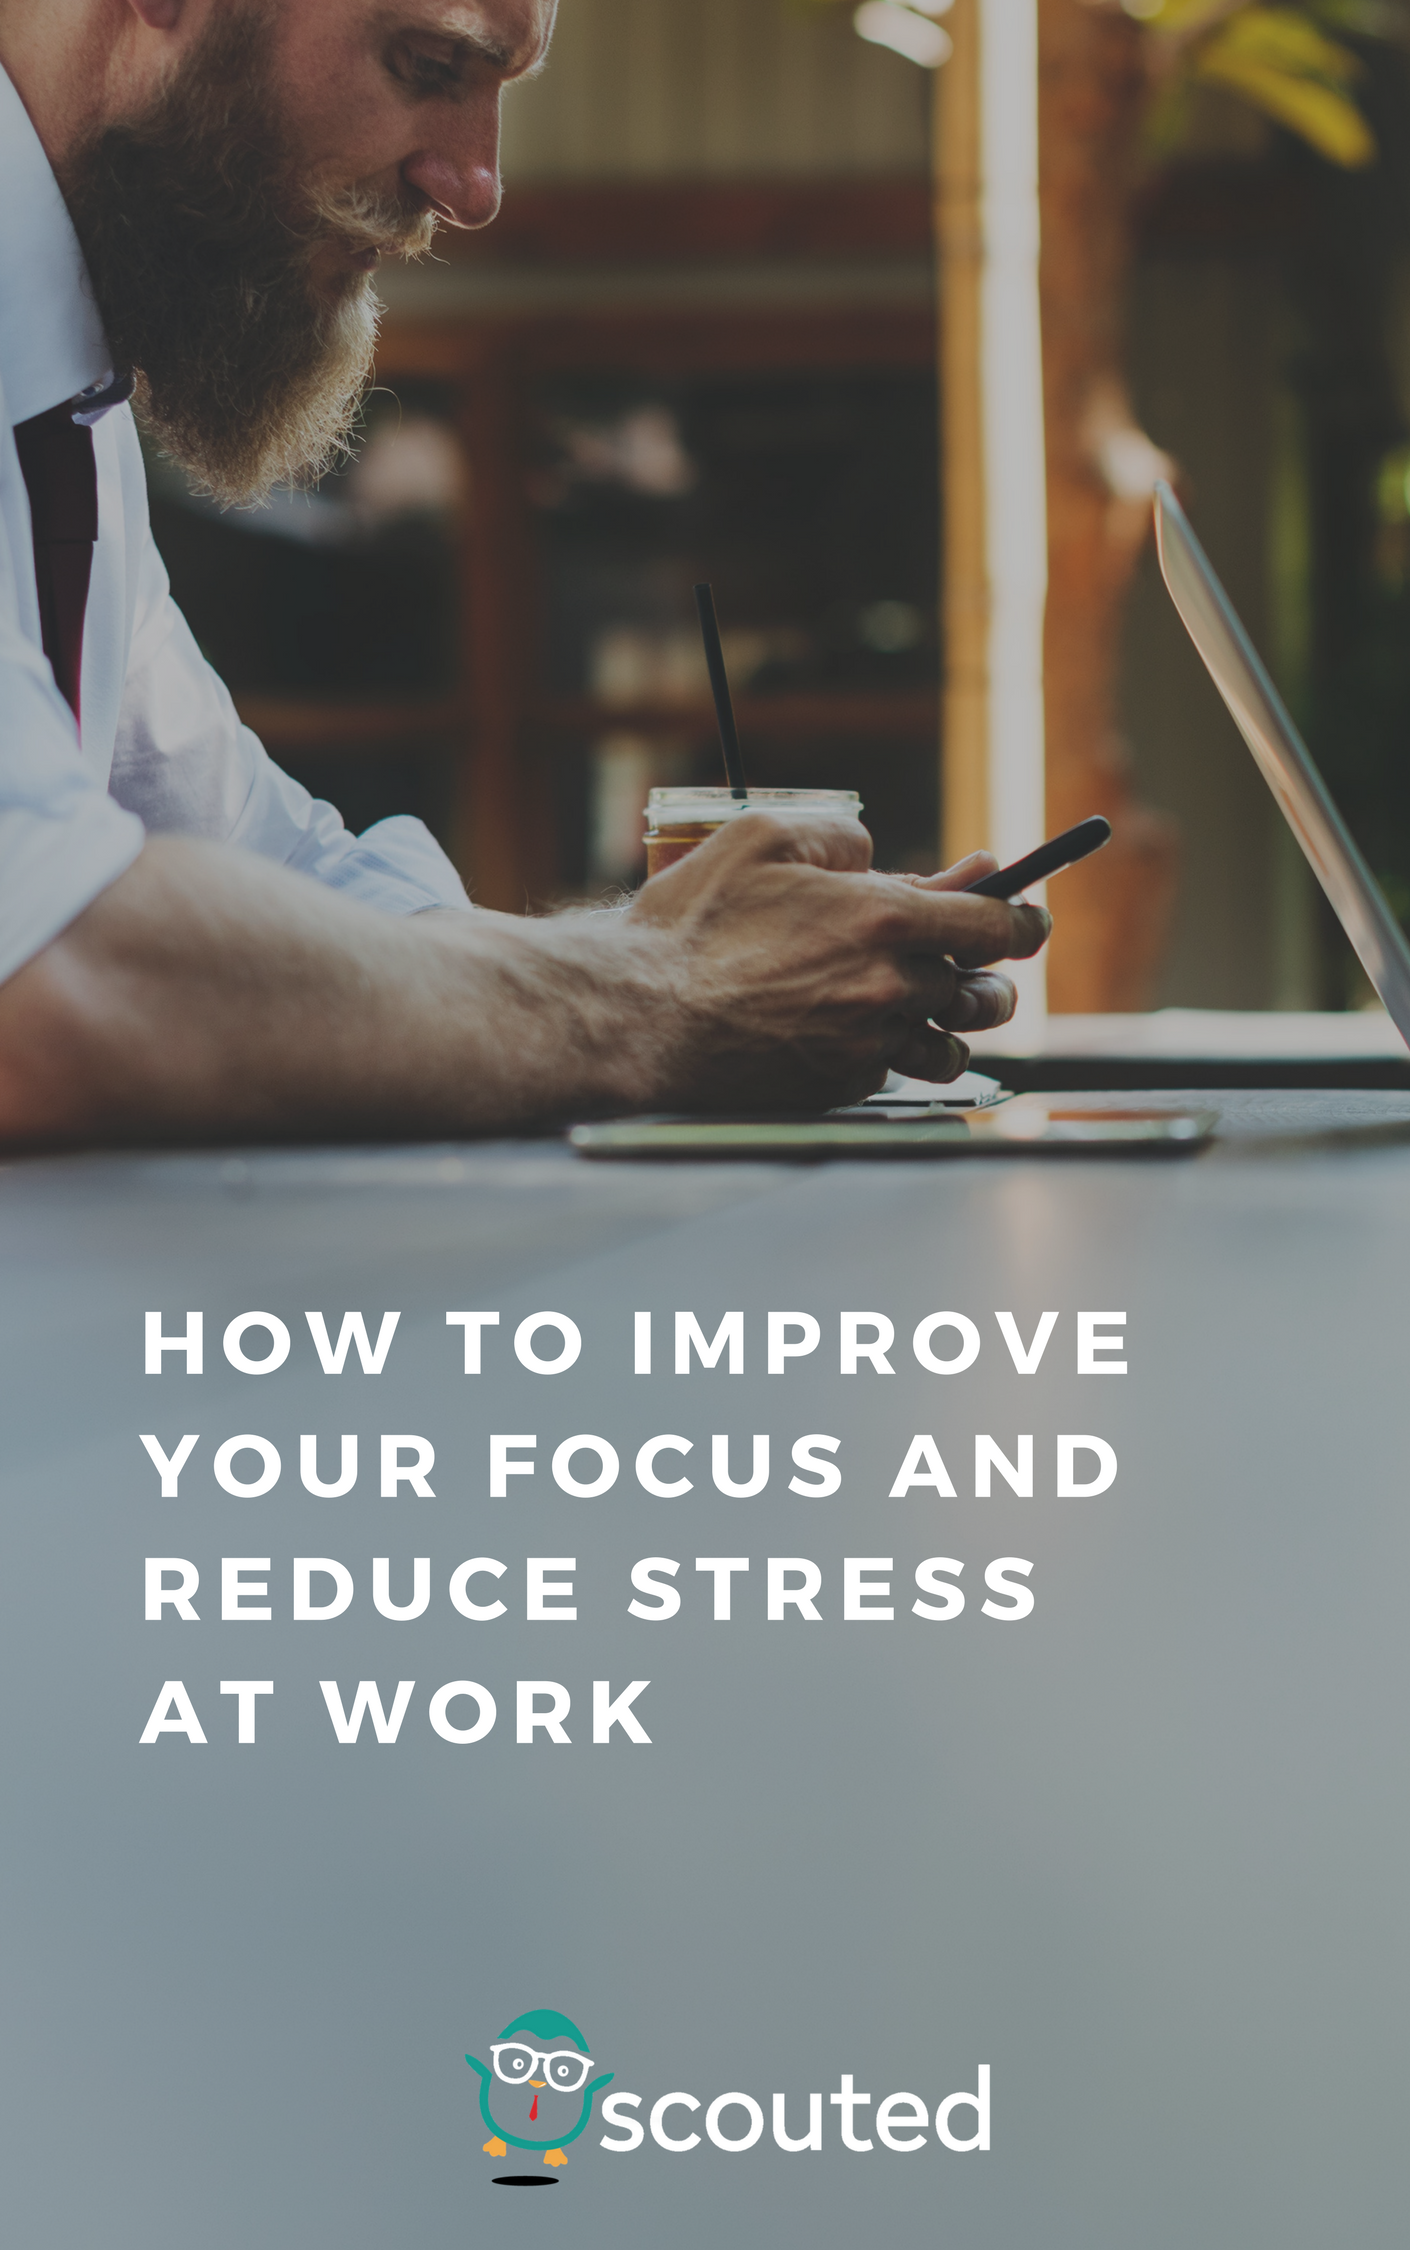 Every workplace has busy and slow seasons. Depending on where you work, you might even have to wear multiple hats. To-do lists pile up, email inboxes can get flooded, and, inevitably, you begin to feel overwhelmed. We're here to teach you a few ways to break through the clutter, banish distractions, knock out overly large to-do lists, and make focus your superpower in the workplace.